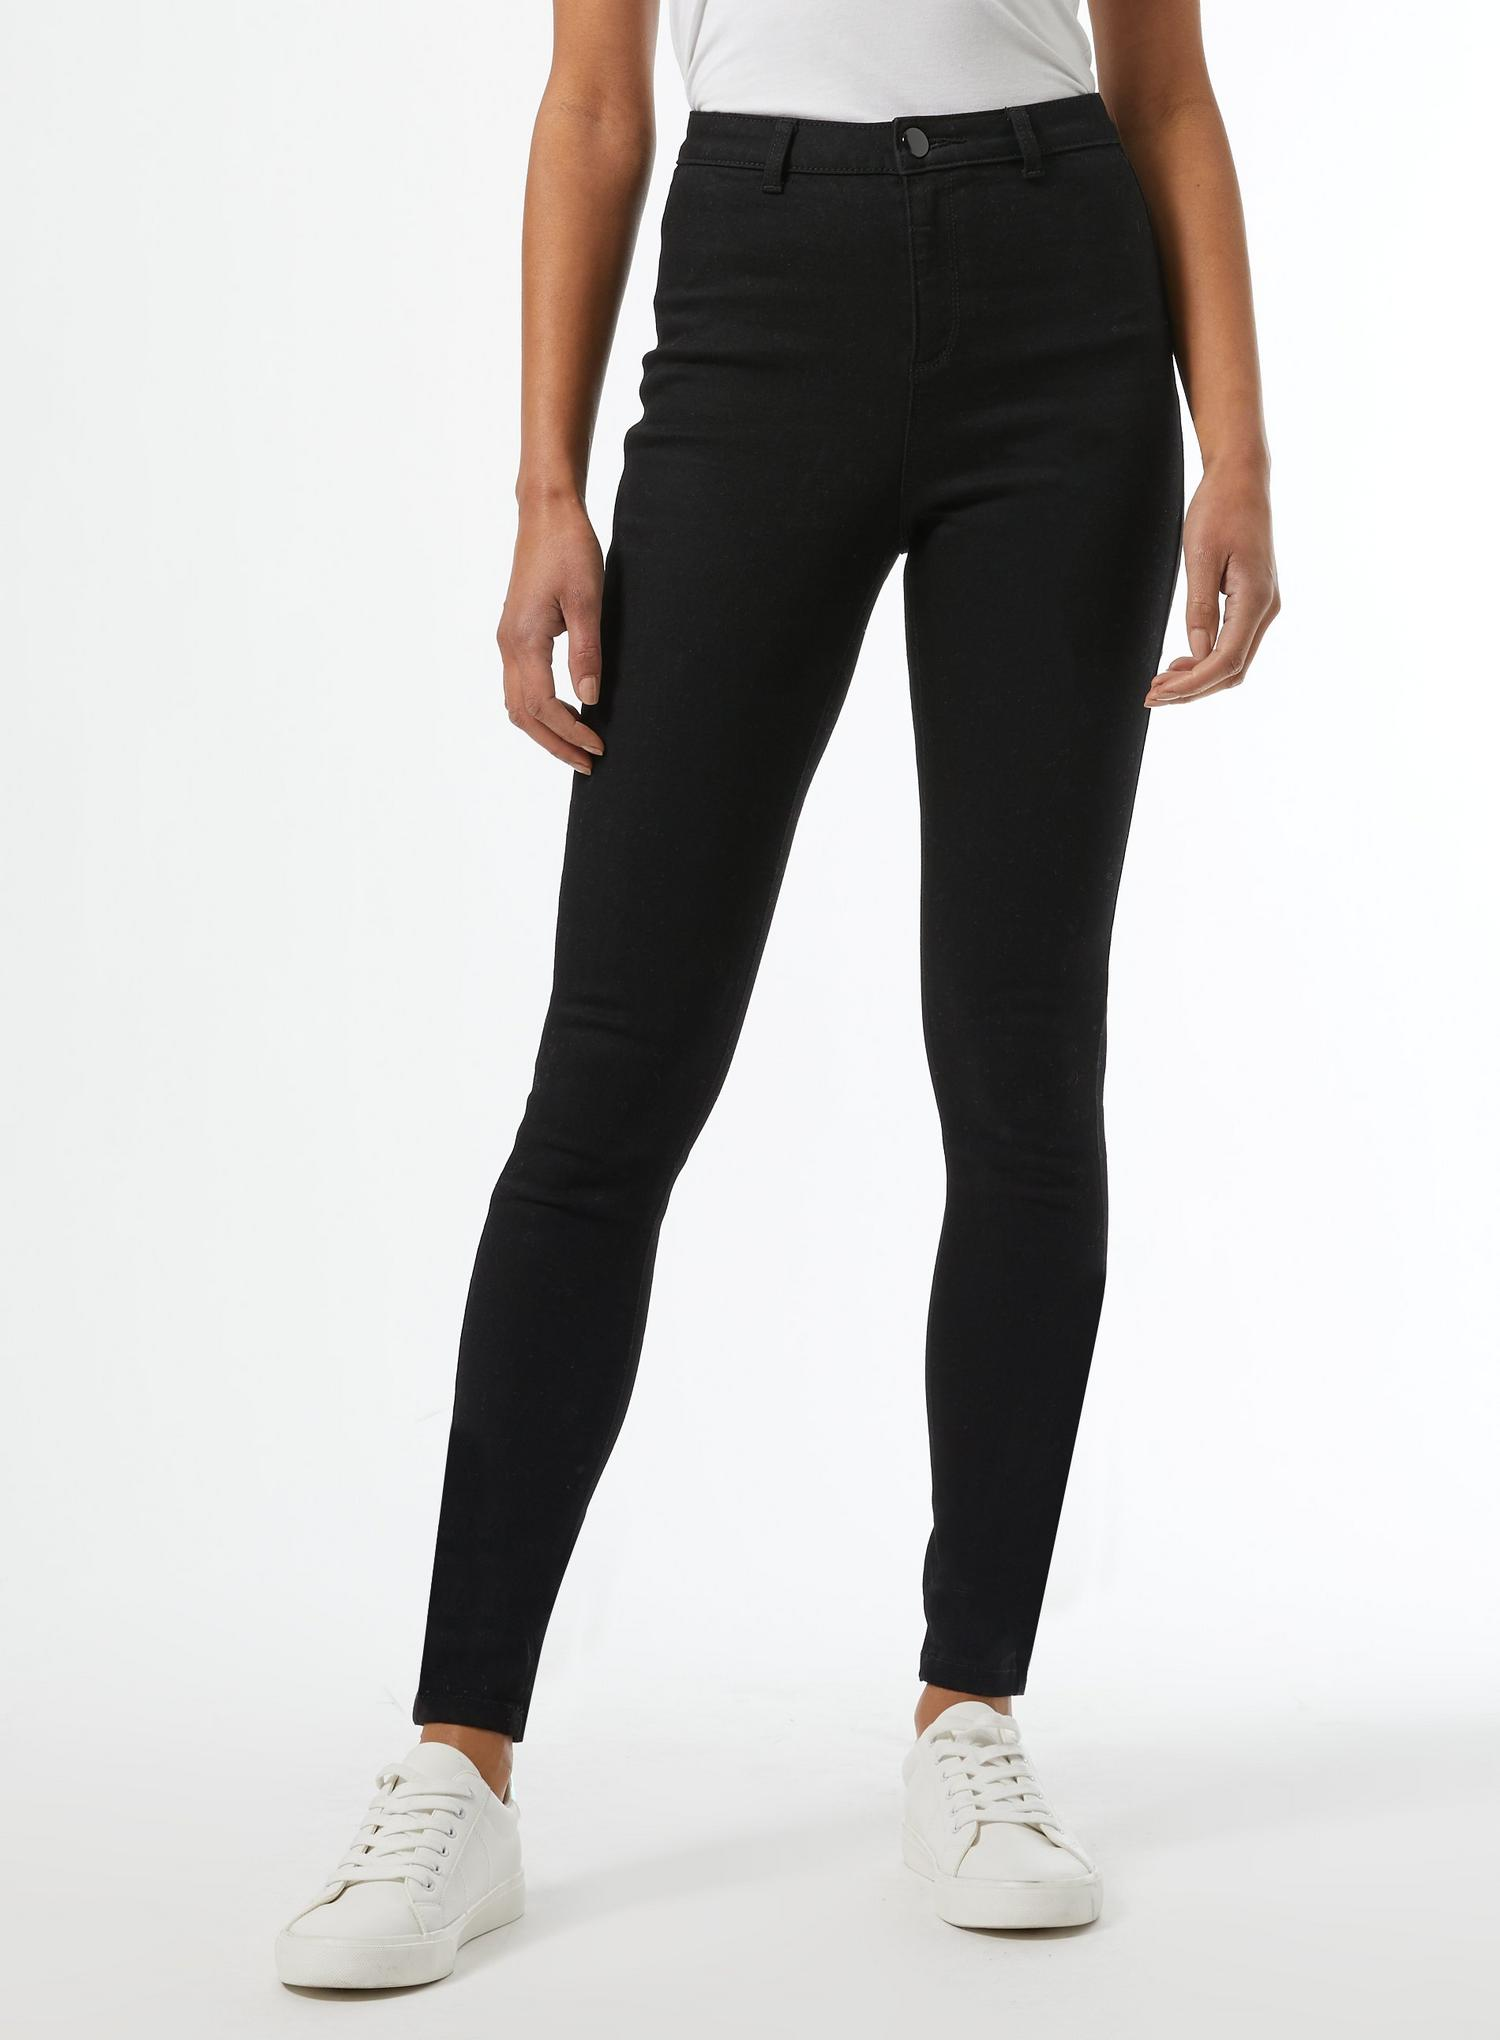 105 Black Long Lyla High Waisted Skinny Jean image number 1